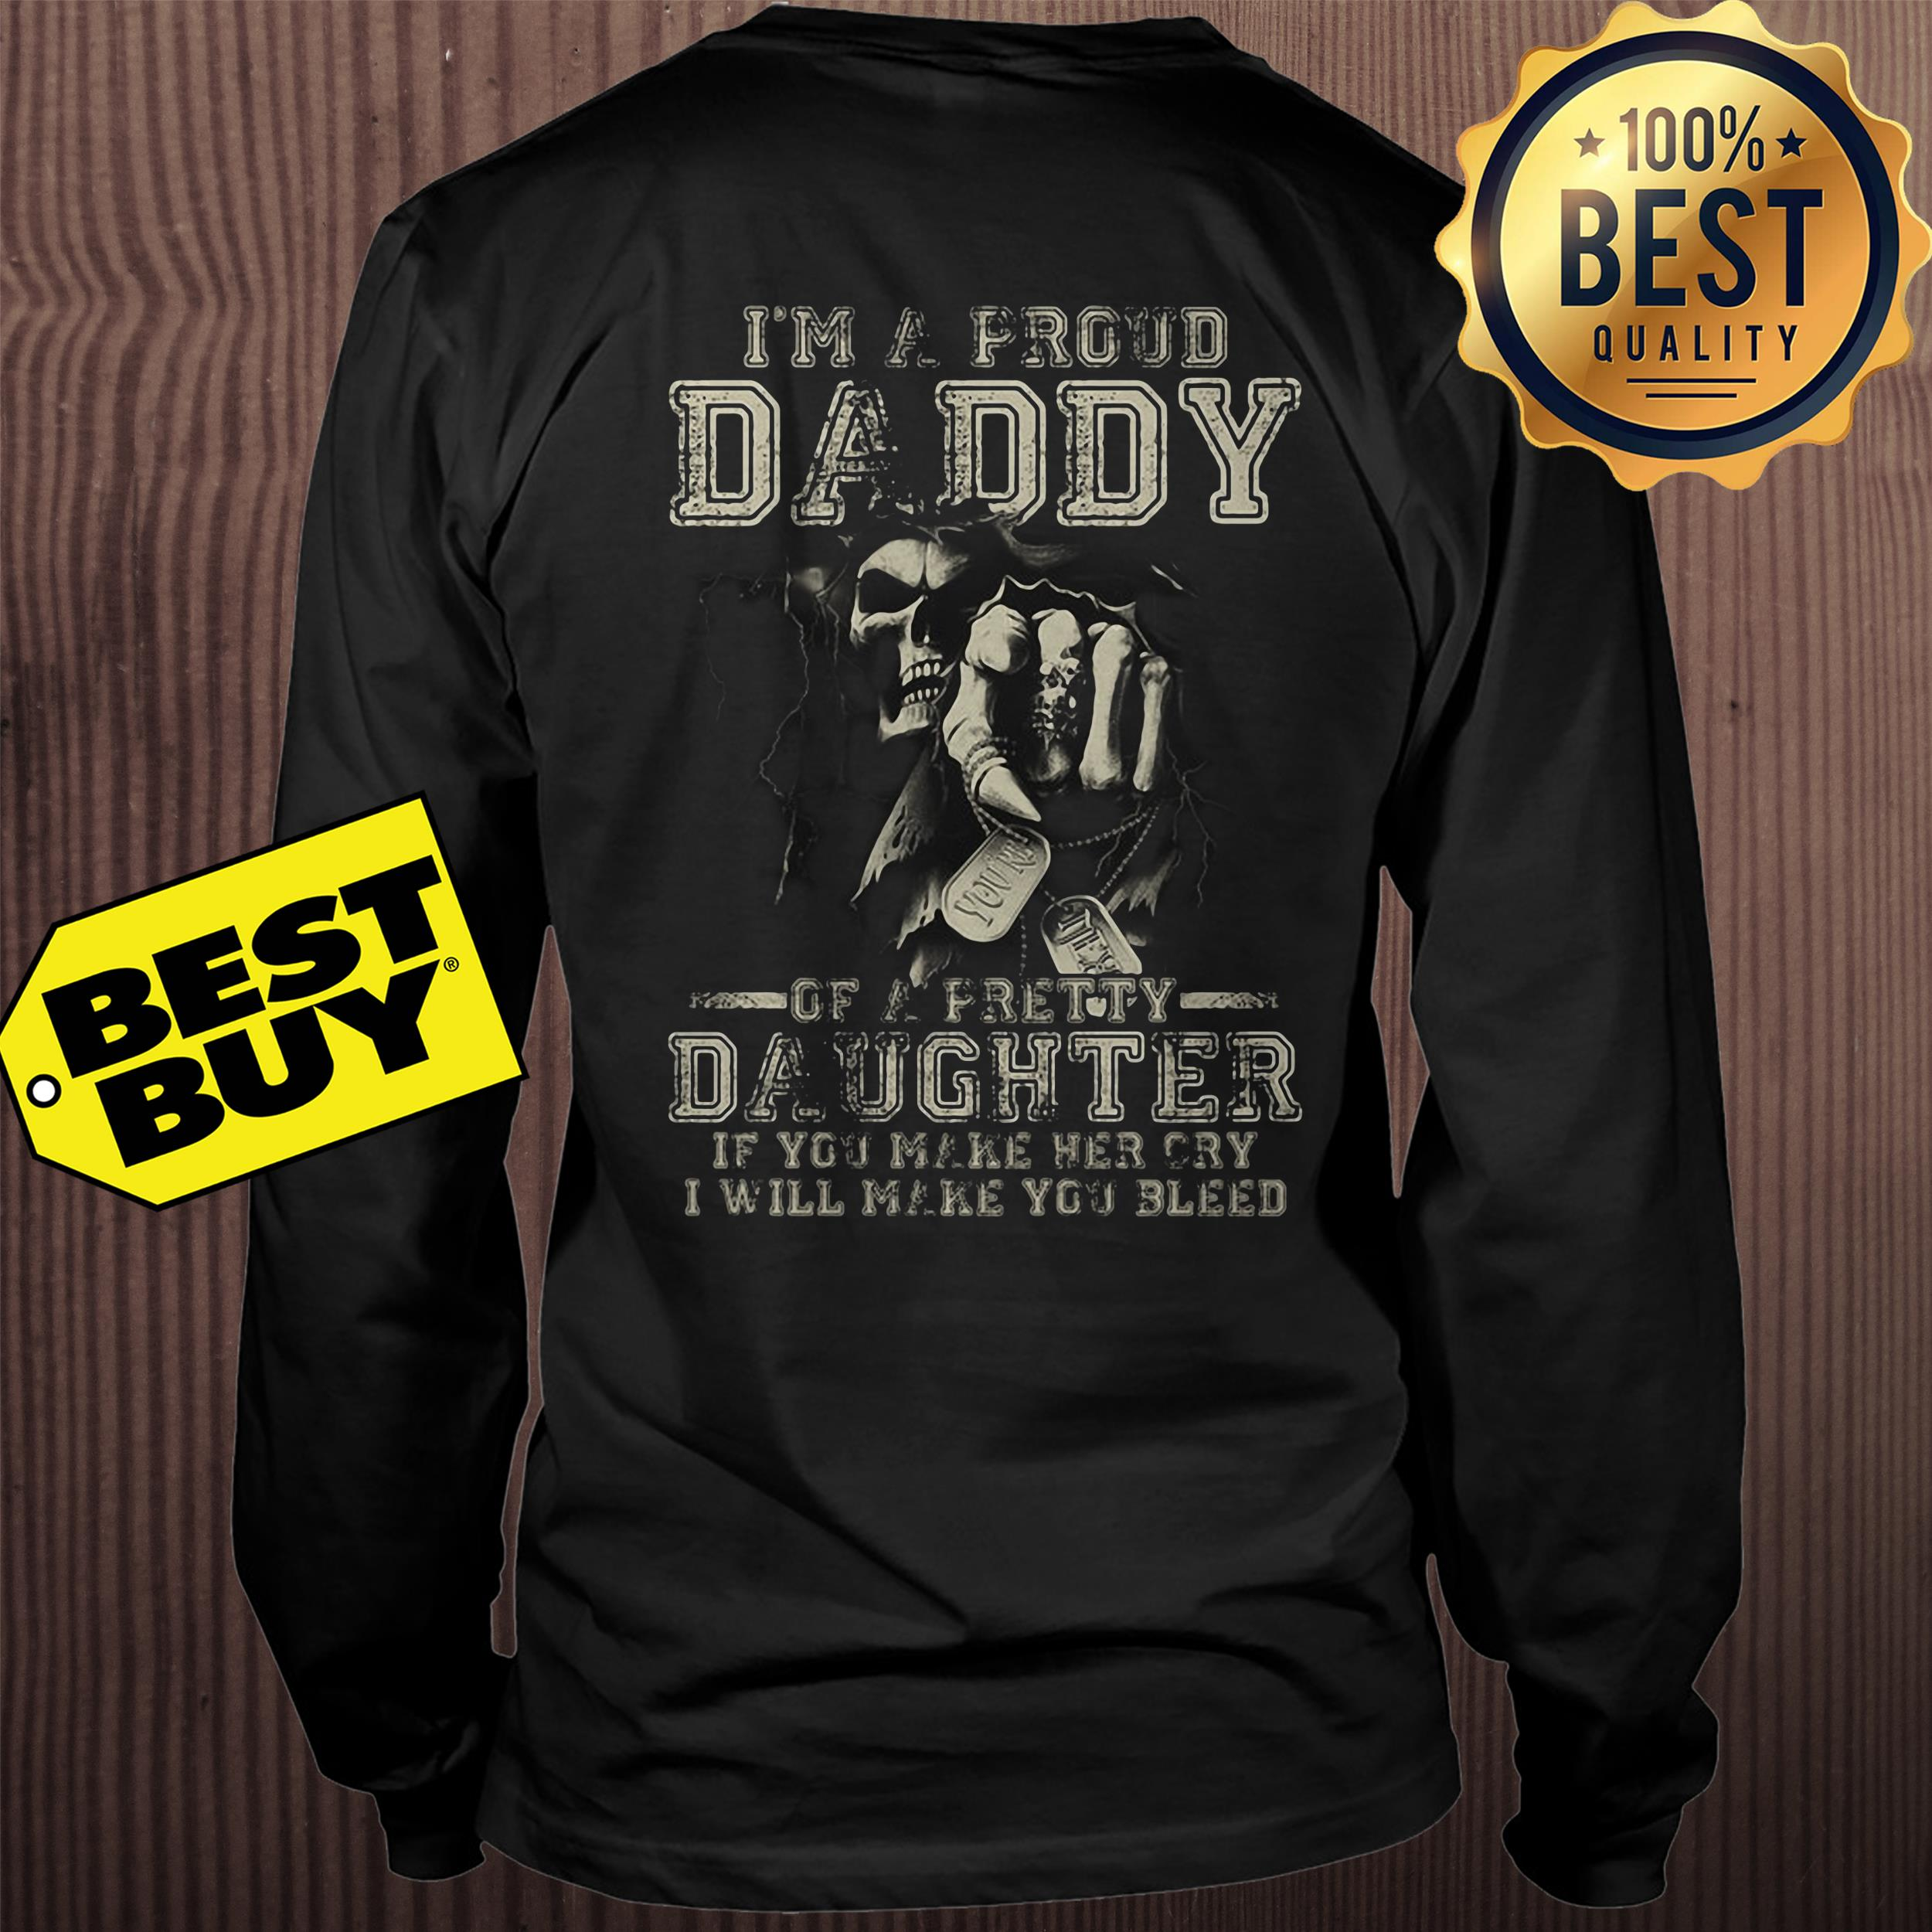 I'm A Proud Daddy Of A Pretty Daughter sweatshirt